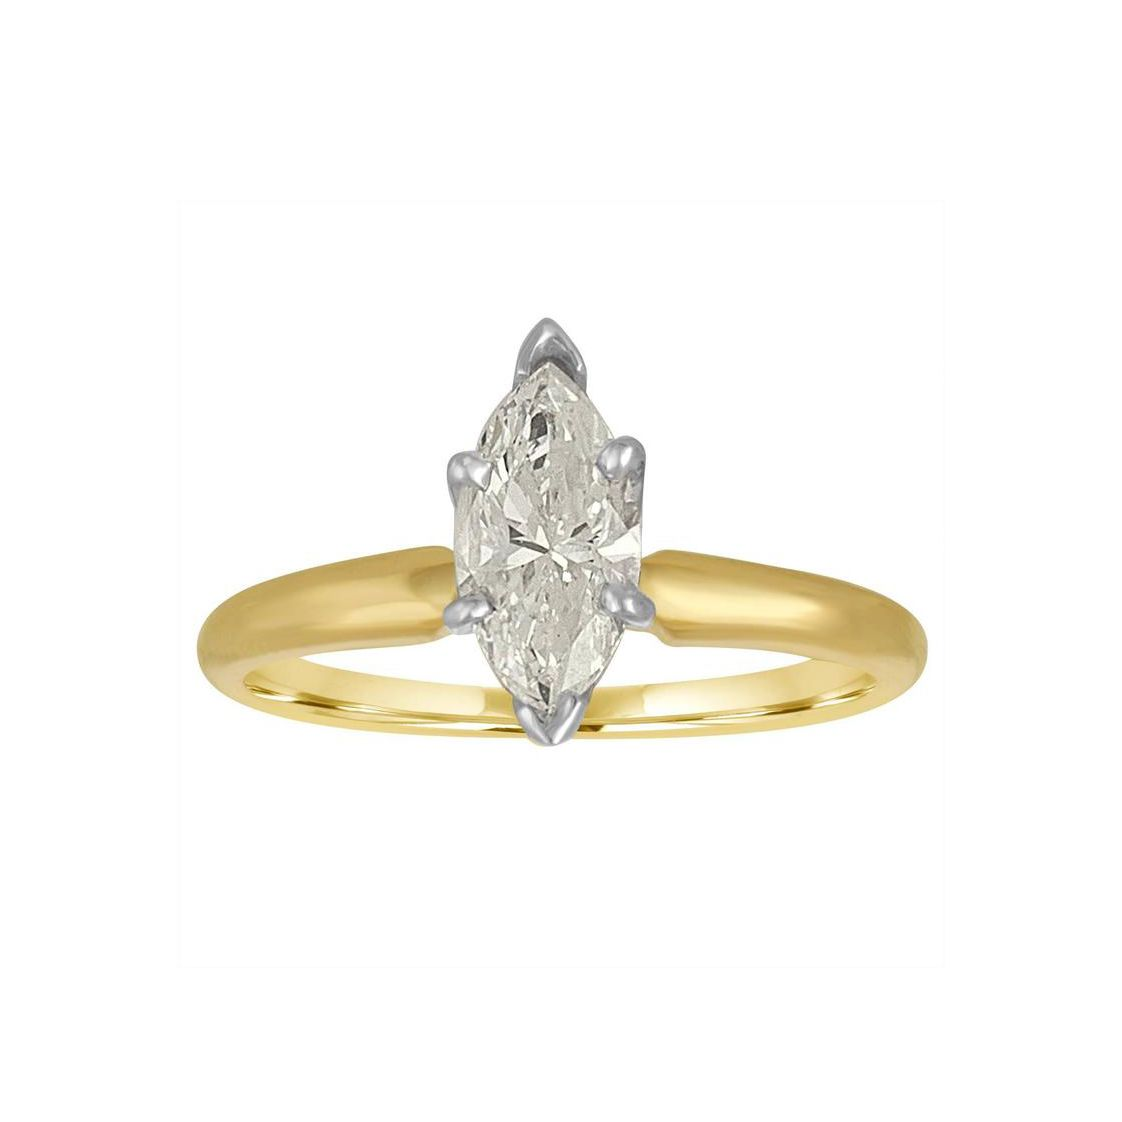 42 Mixed Metal Engagement Rings To Break The Rules